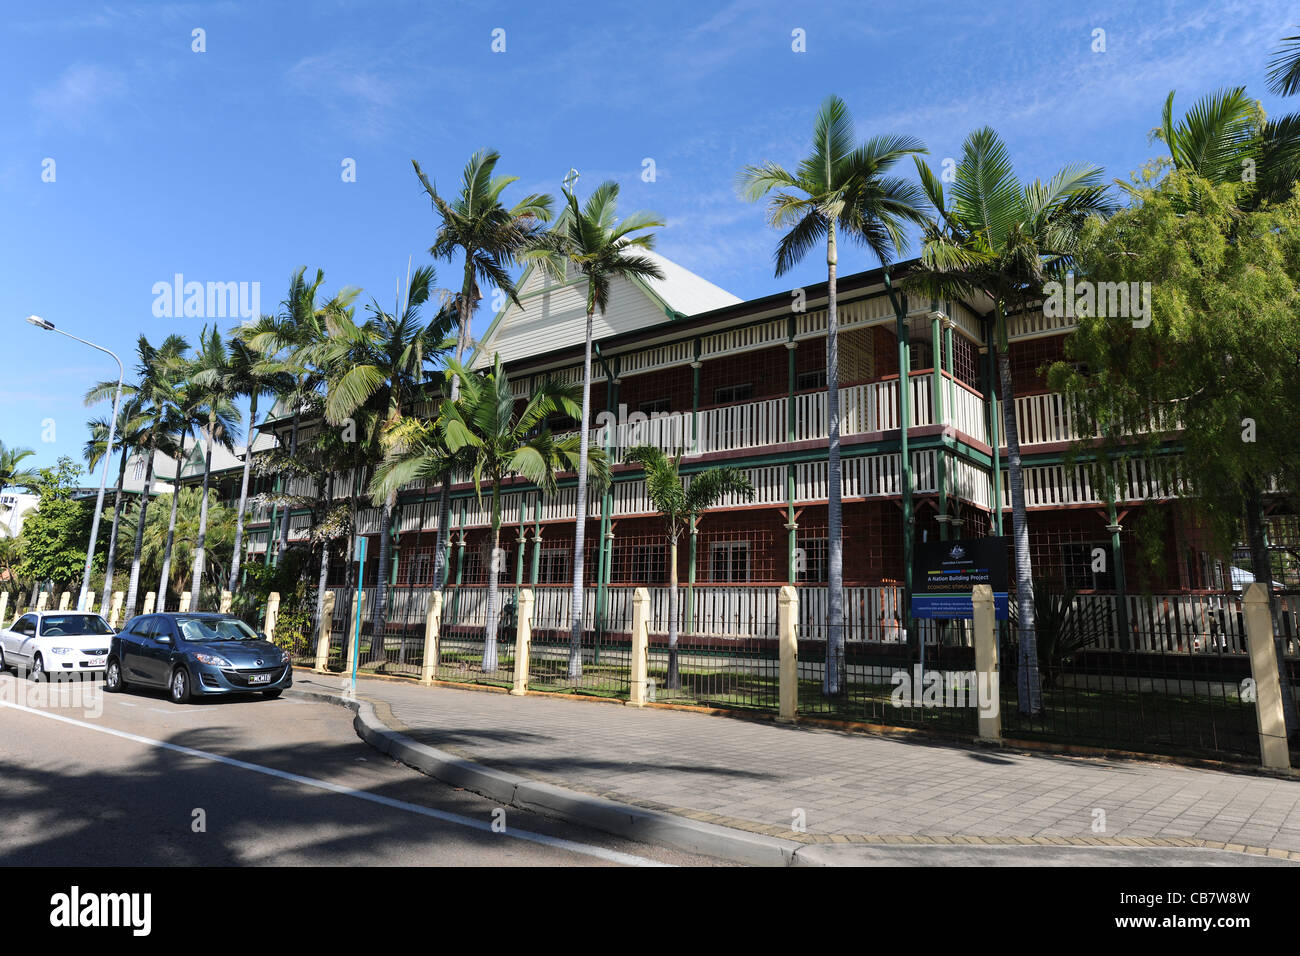 St Patrick's College, All Girls Catholic School, The Strand, Townsville, Queensland, Australia - Stock Image